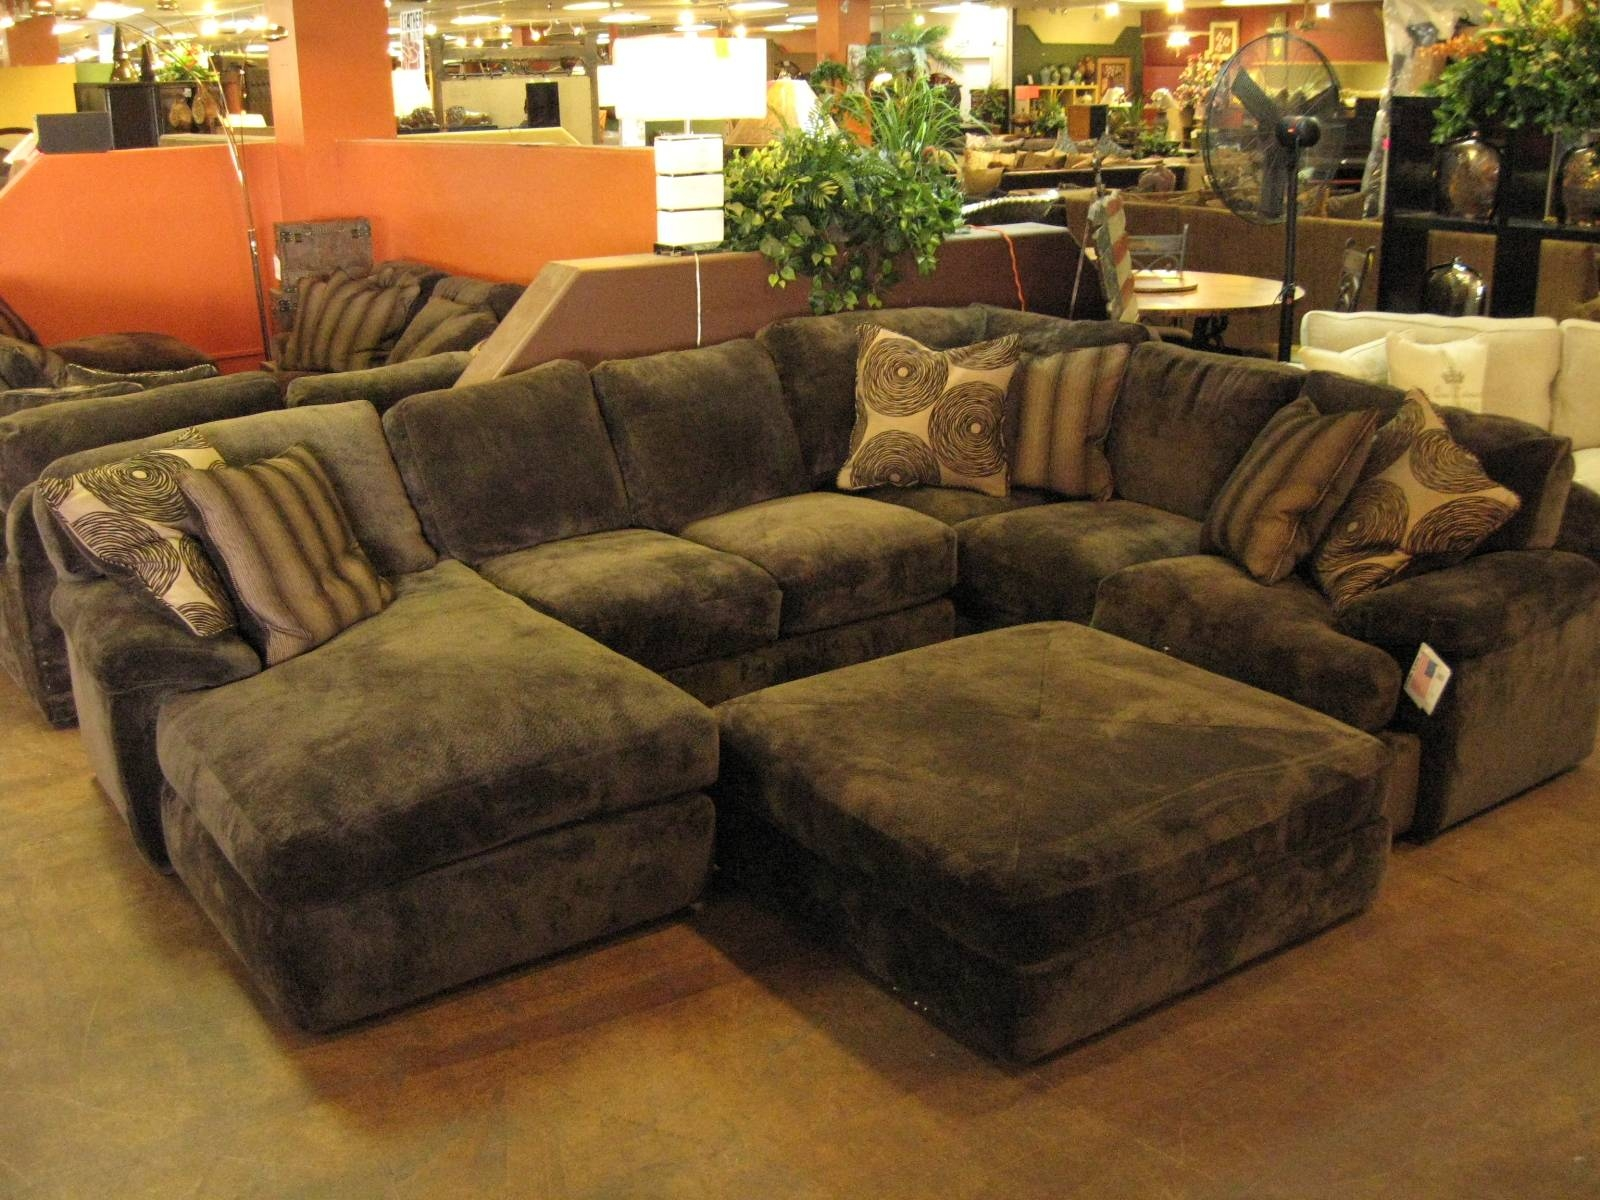 Sofas Center : Wonderful Cheap Rednal Sofa About Remodel Create intended for Down Filled Sofas And Sectionals (Image 29 of 30)